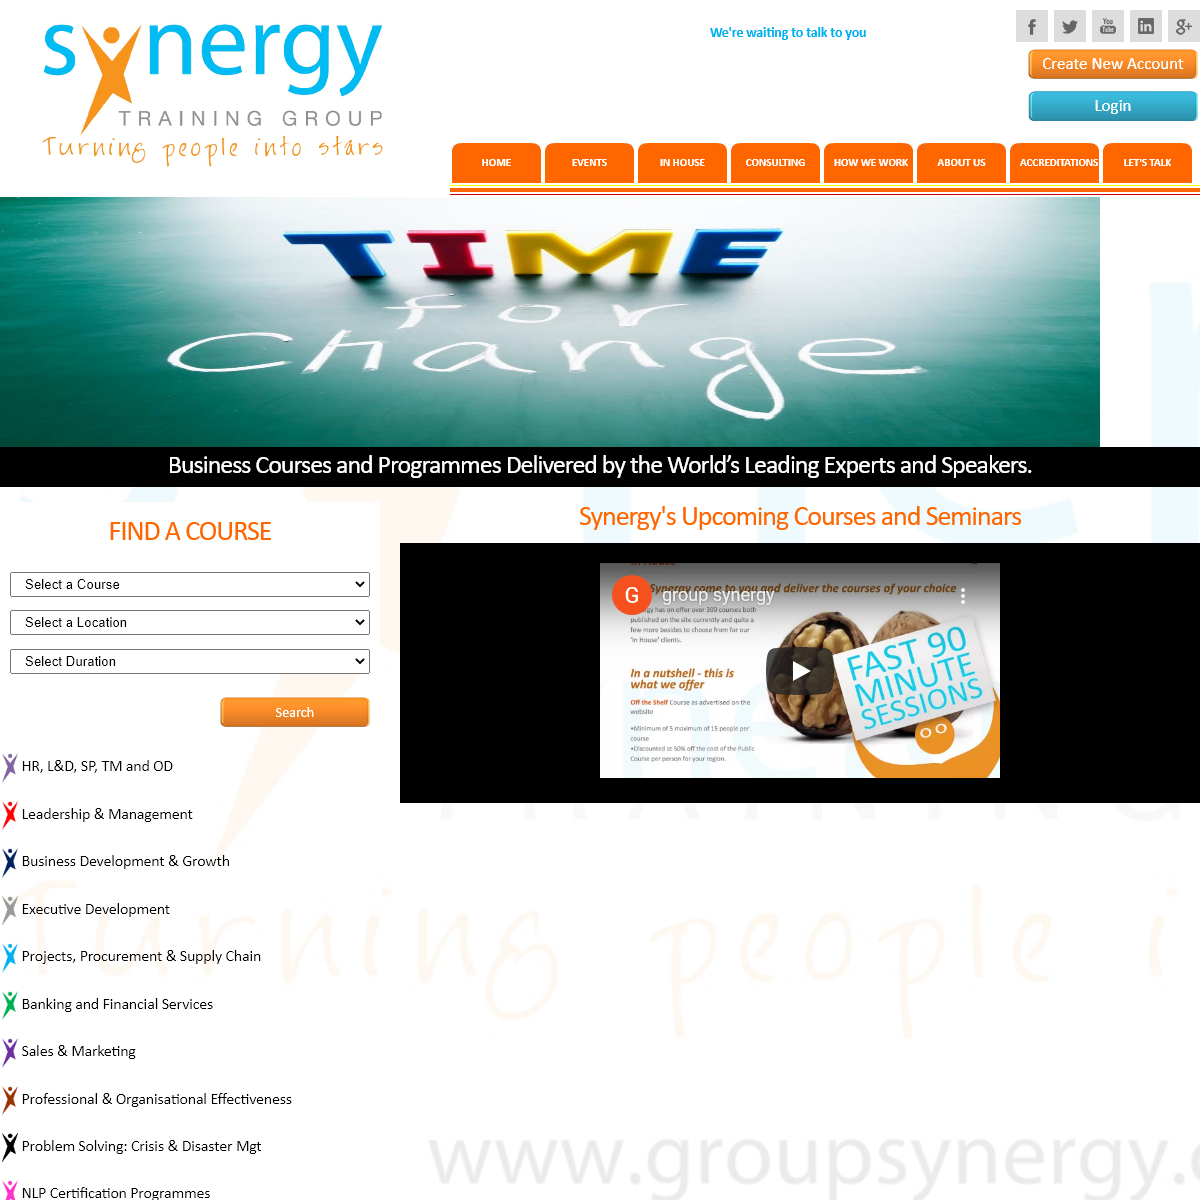 Synergy Training Group - Home